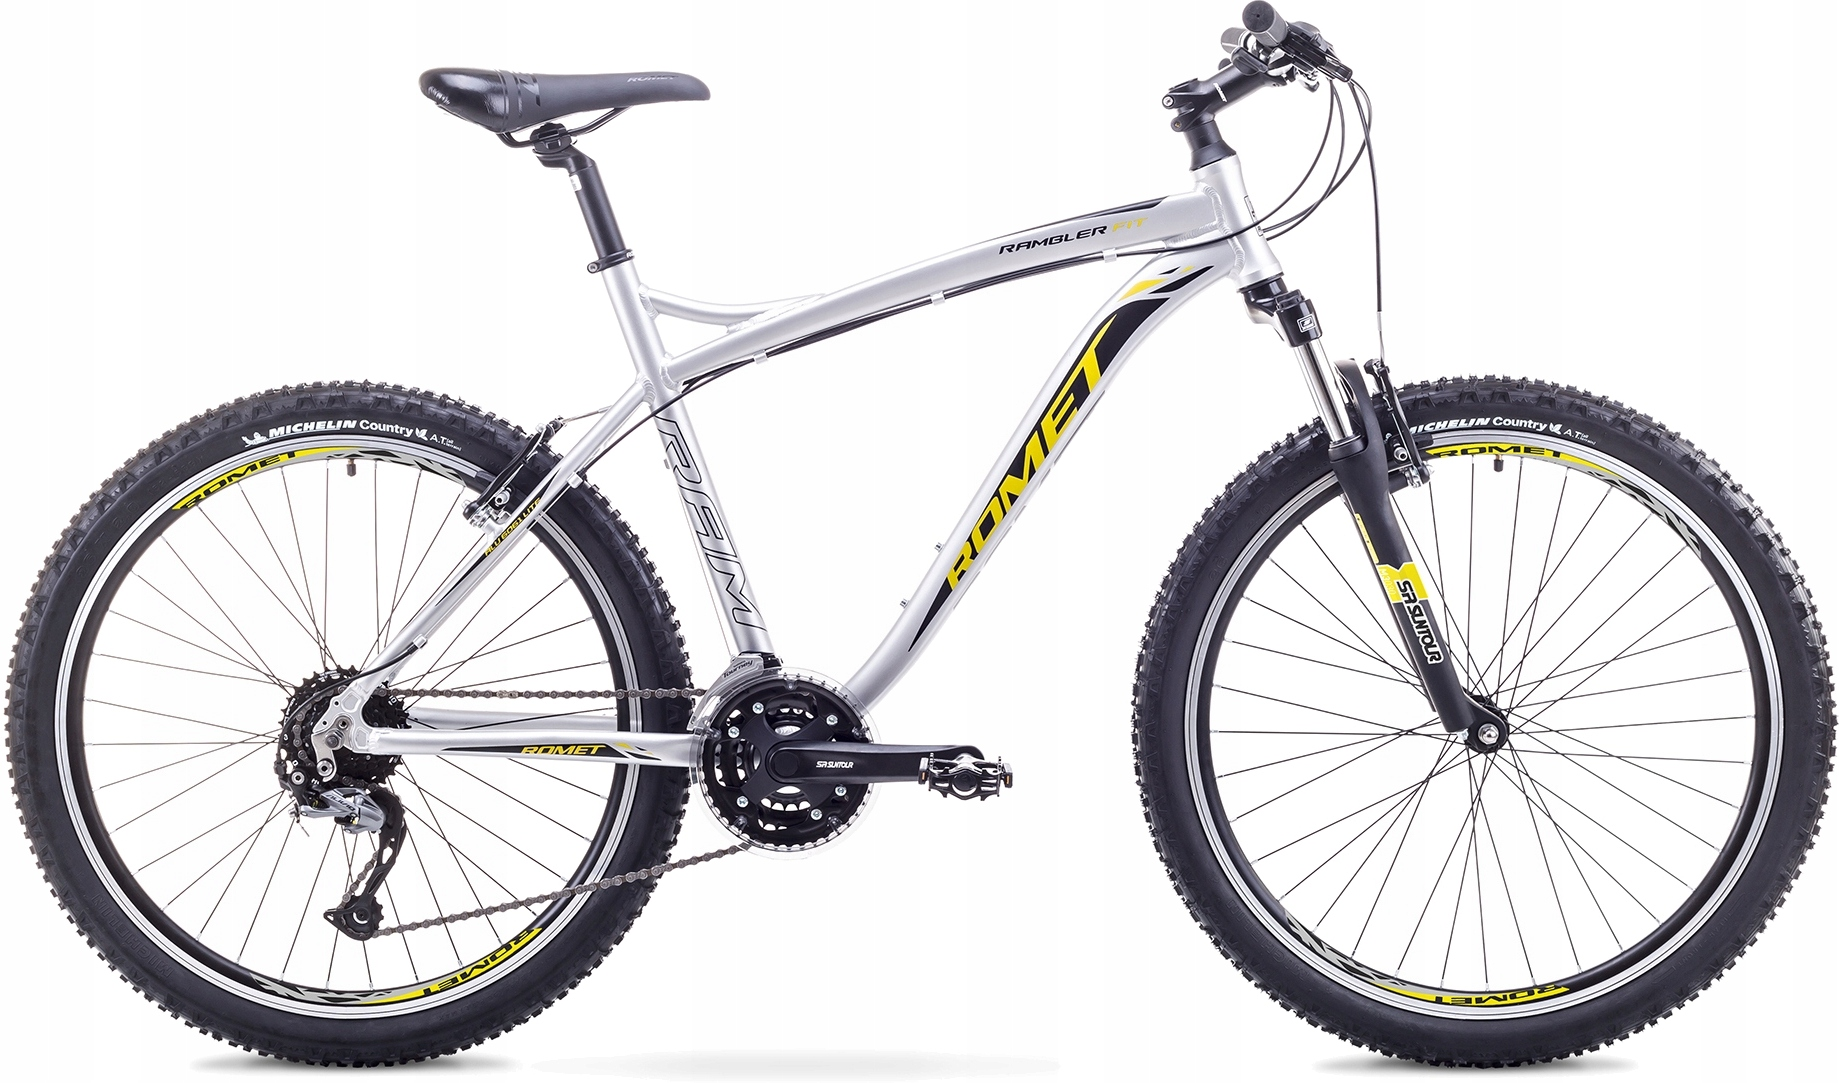 Horský bicykel - Romet Rambler Fit 26 MTB Men's + FREE